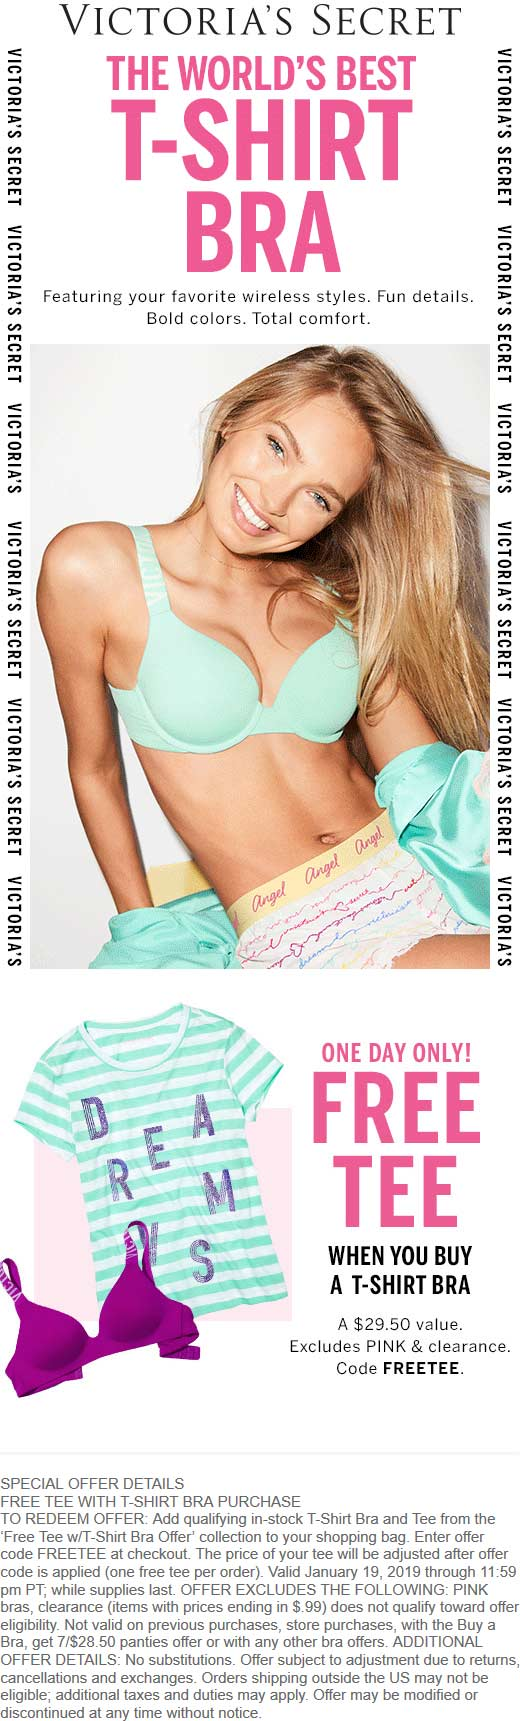 Victorias Secret Coupon February 2020 Free t-shirt with your bra today at Victorias Secret, or online via promo code FREETEE